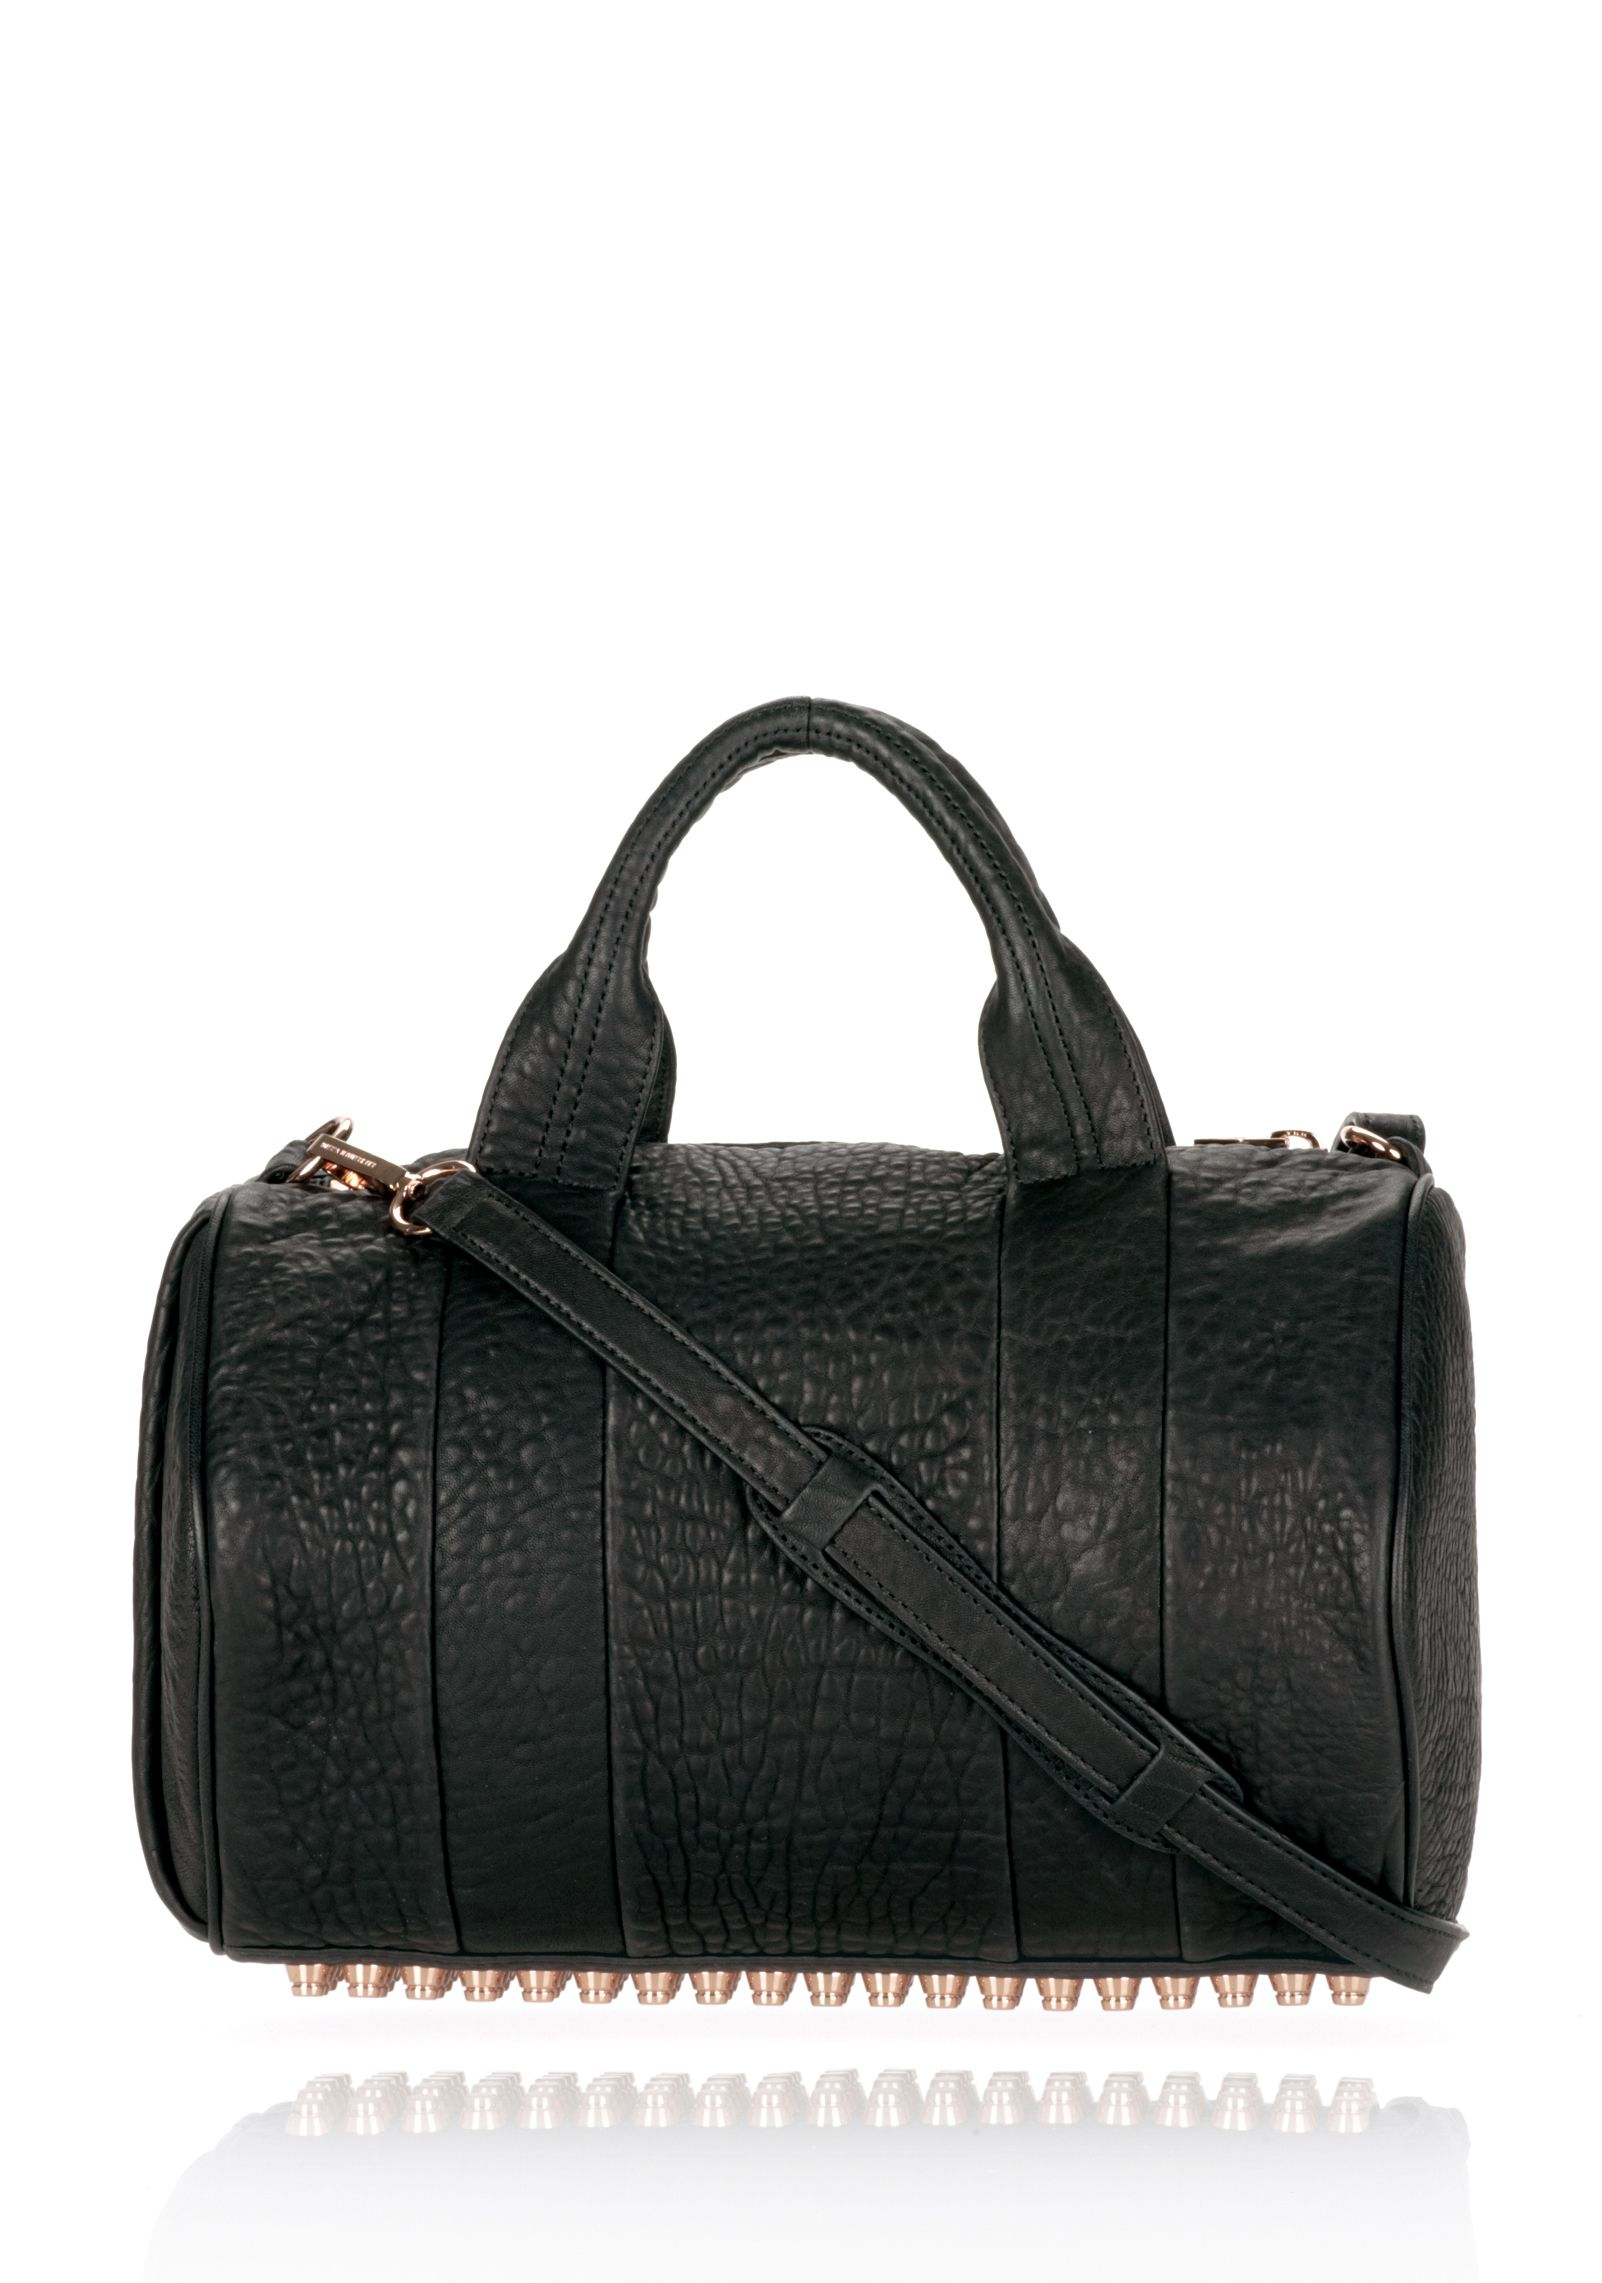 ROCCO IN BLACK PEBBLE LAMB WITH ROSEGOLD - Shoulder Bags Women - Alexander Wang Online Store